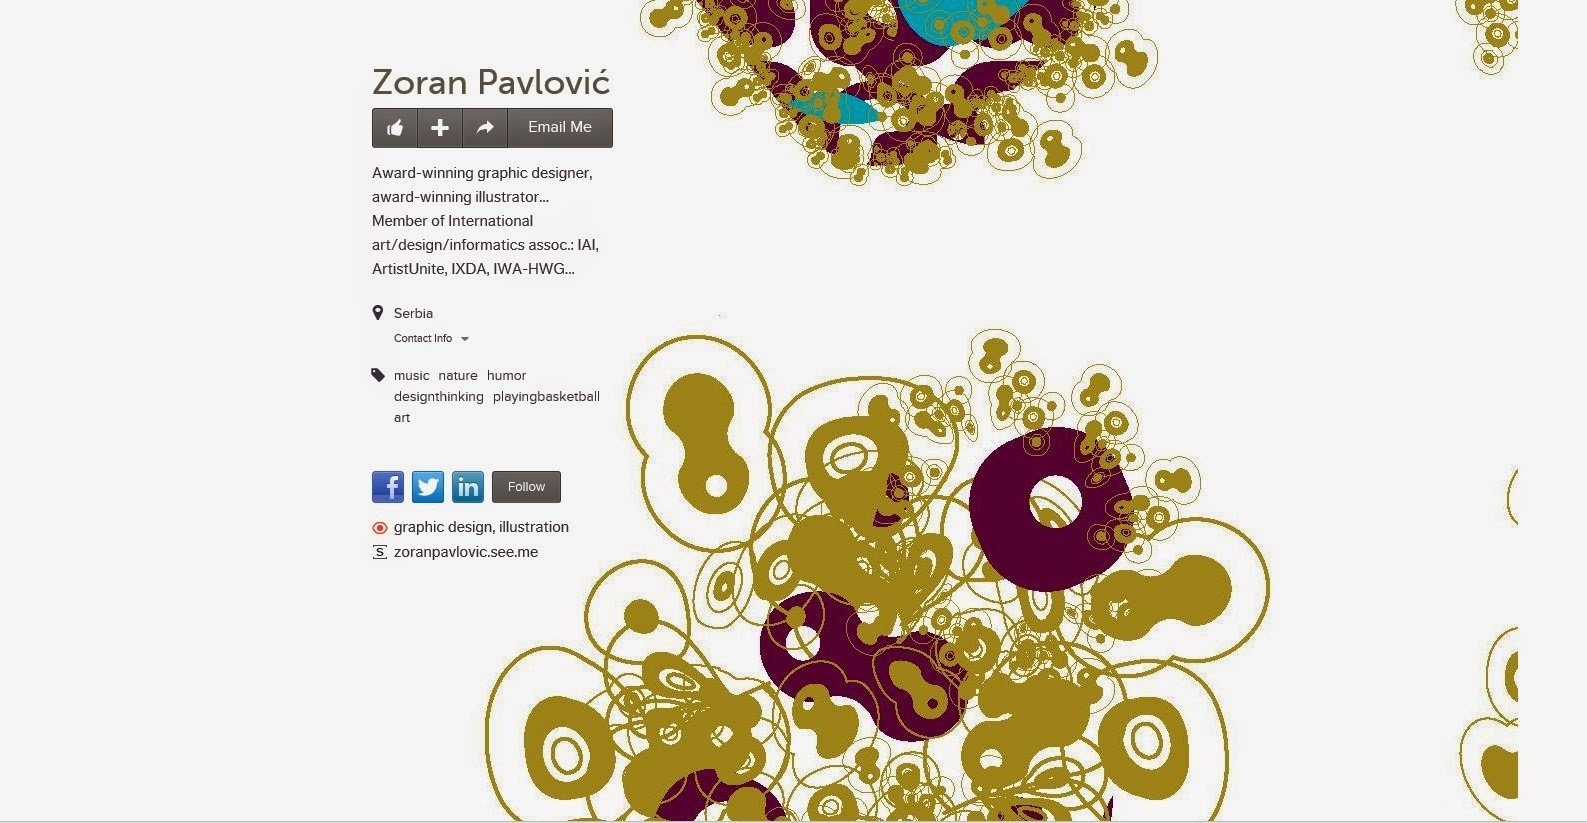 An image of Zoran Pavlović's, Graphic Designer & Illustrator About.me page